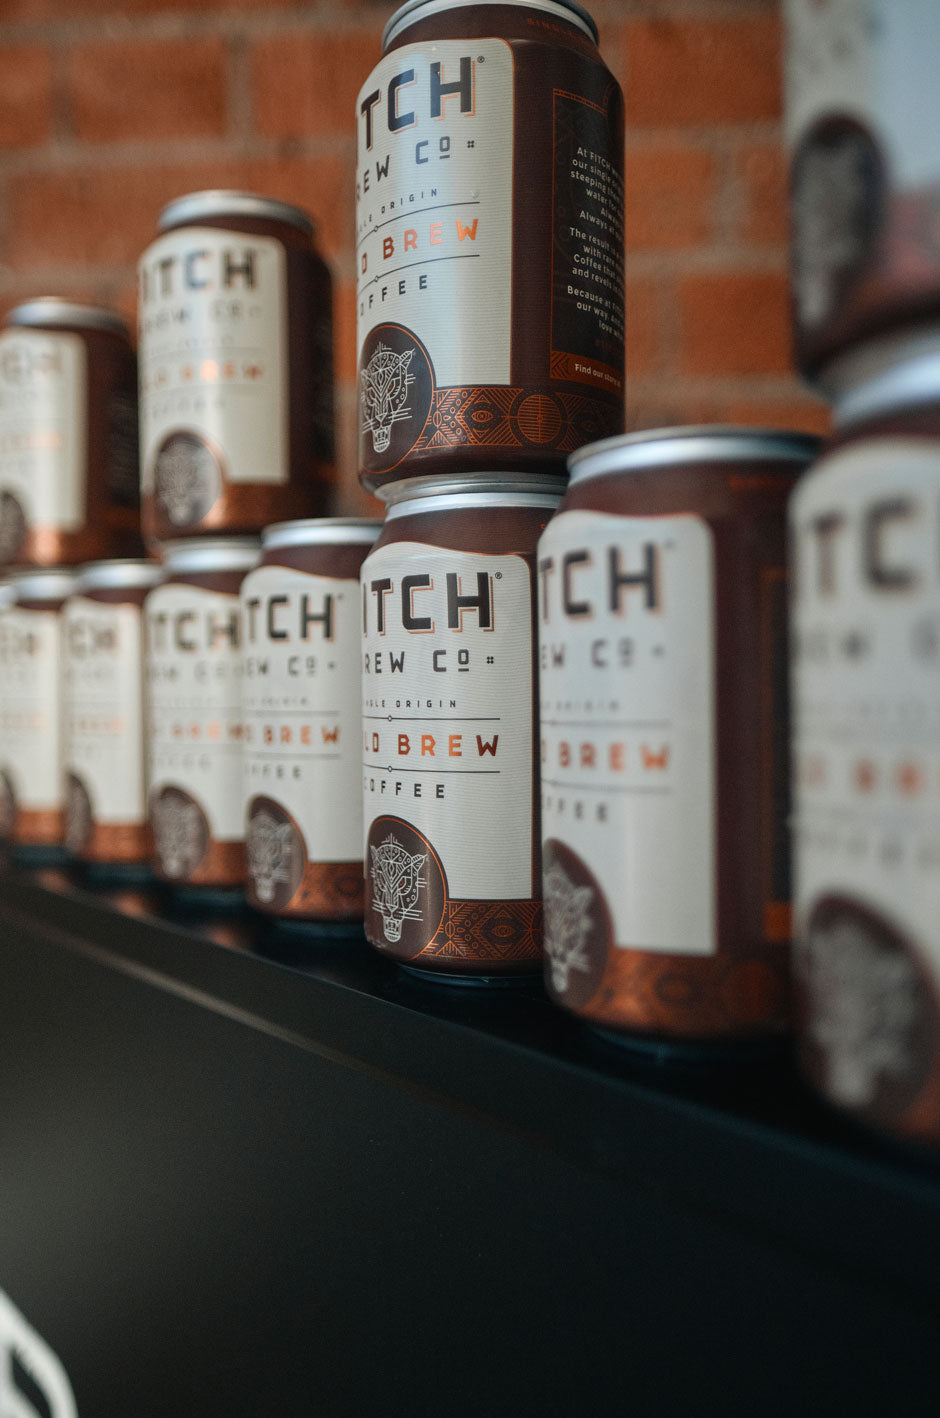 P&Co x Fitchbrew Co Coffee